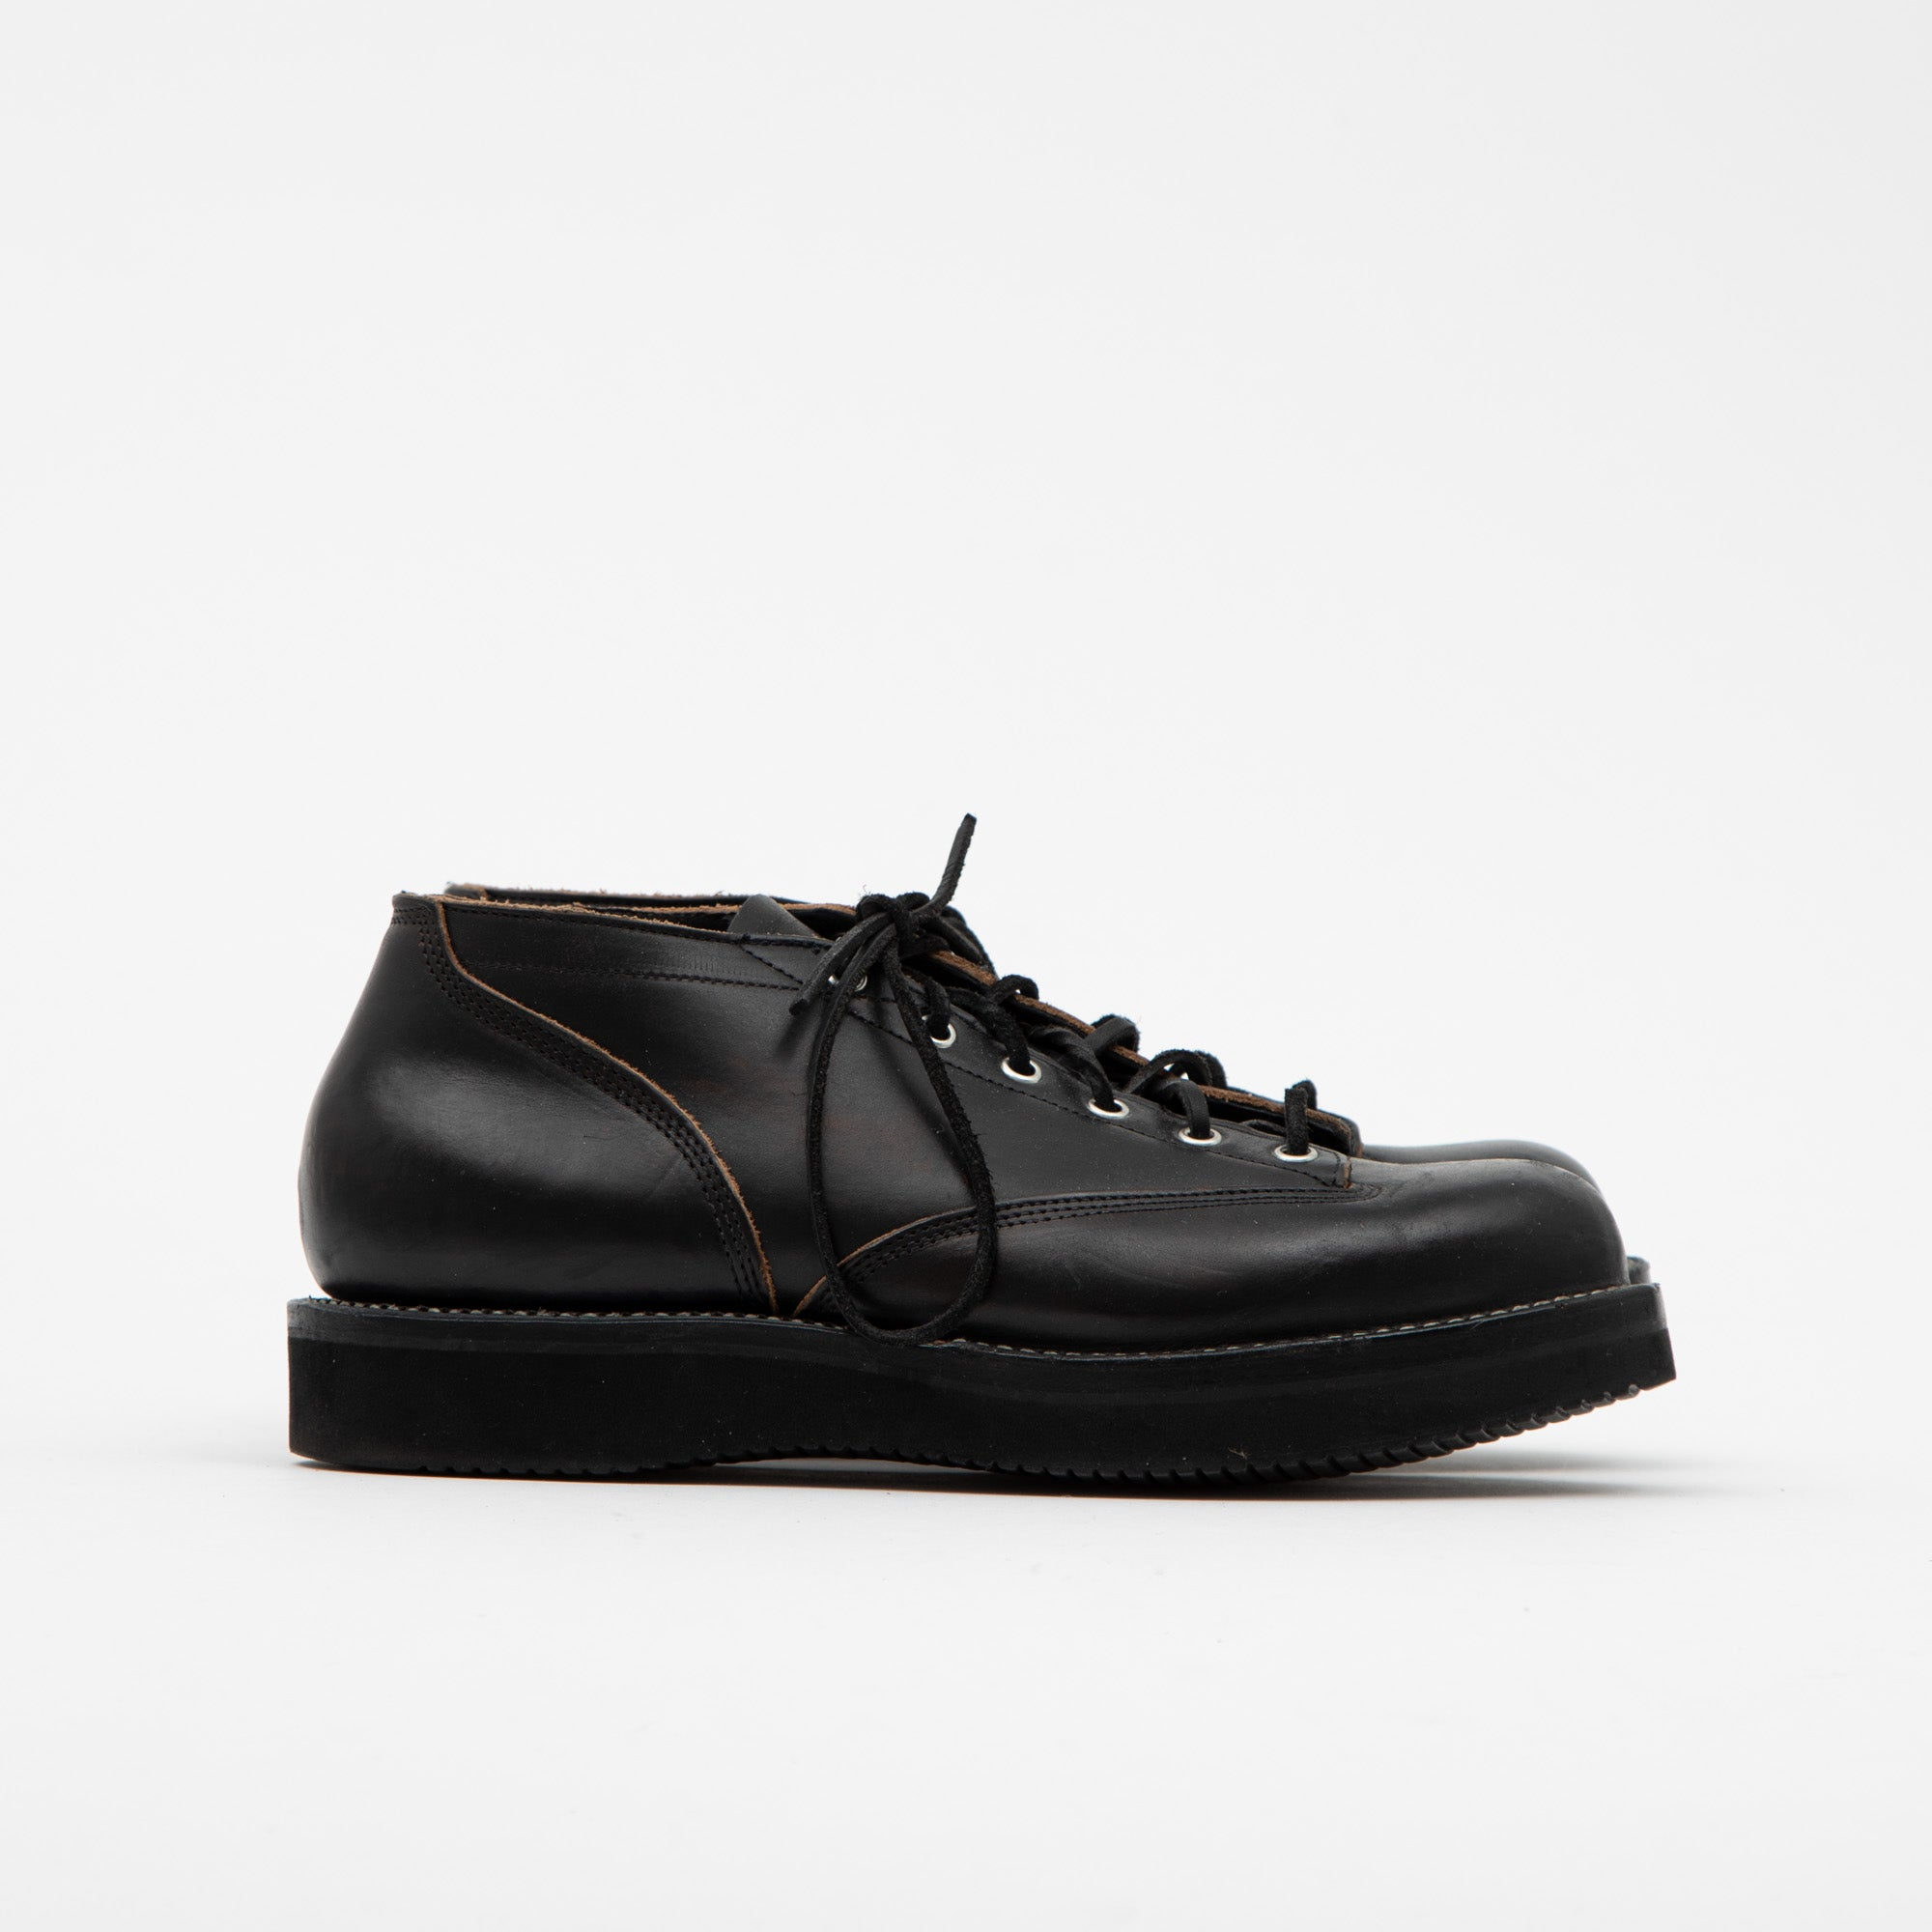 Viberg Lace to Toe Oxford Shoes (Japan Edition)